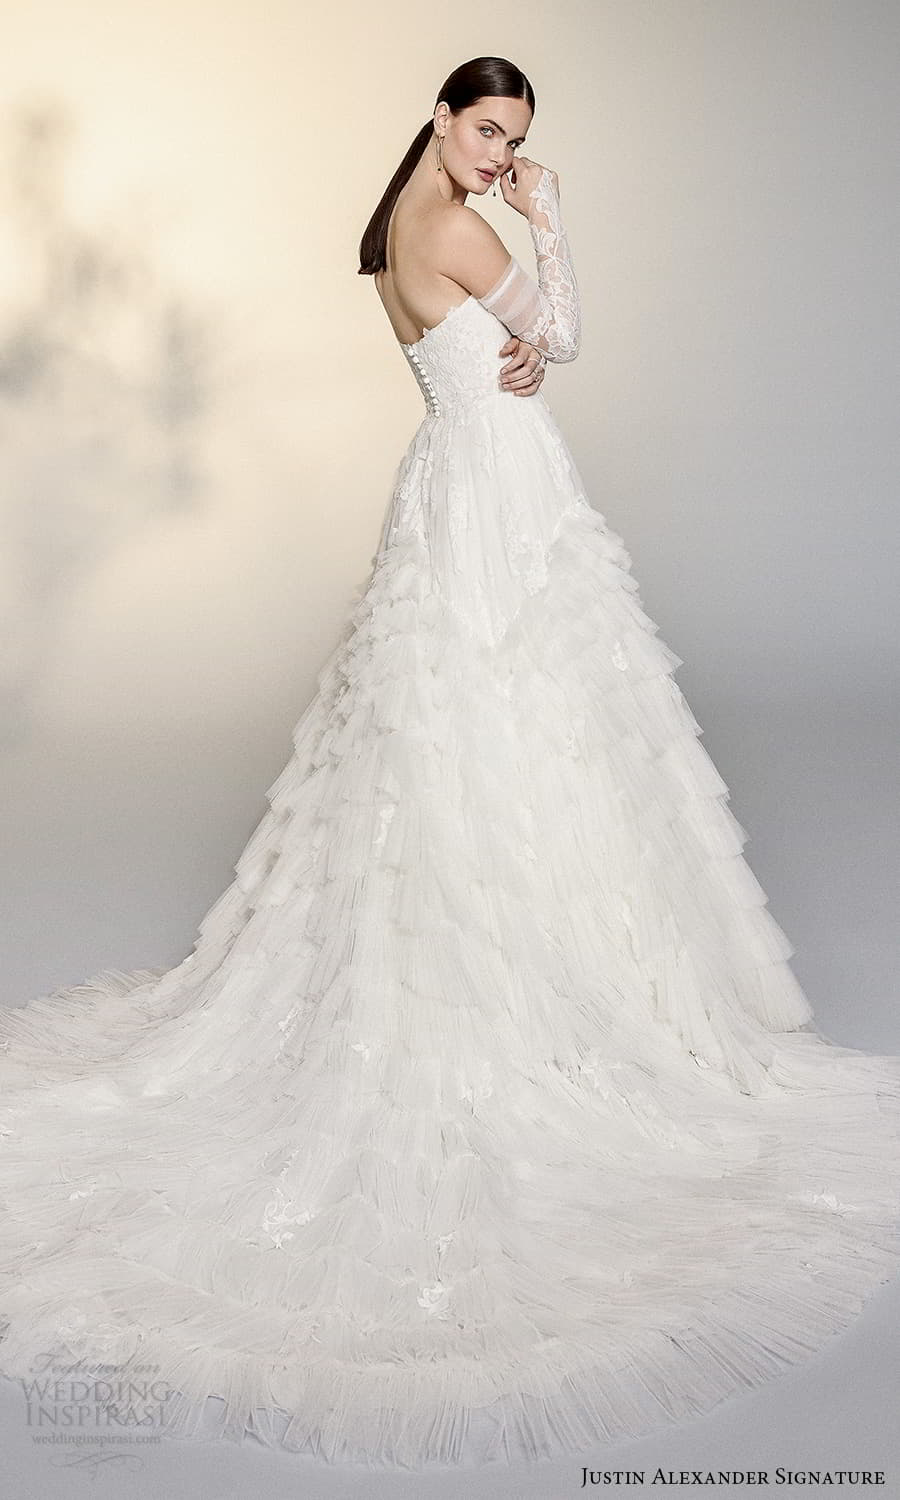 justin alexander signature spring 2022 bridal detached long sleeves strapless sweetheart neckline fully embellished lace a line ball gown wedding dress chapel train (9) bv